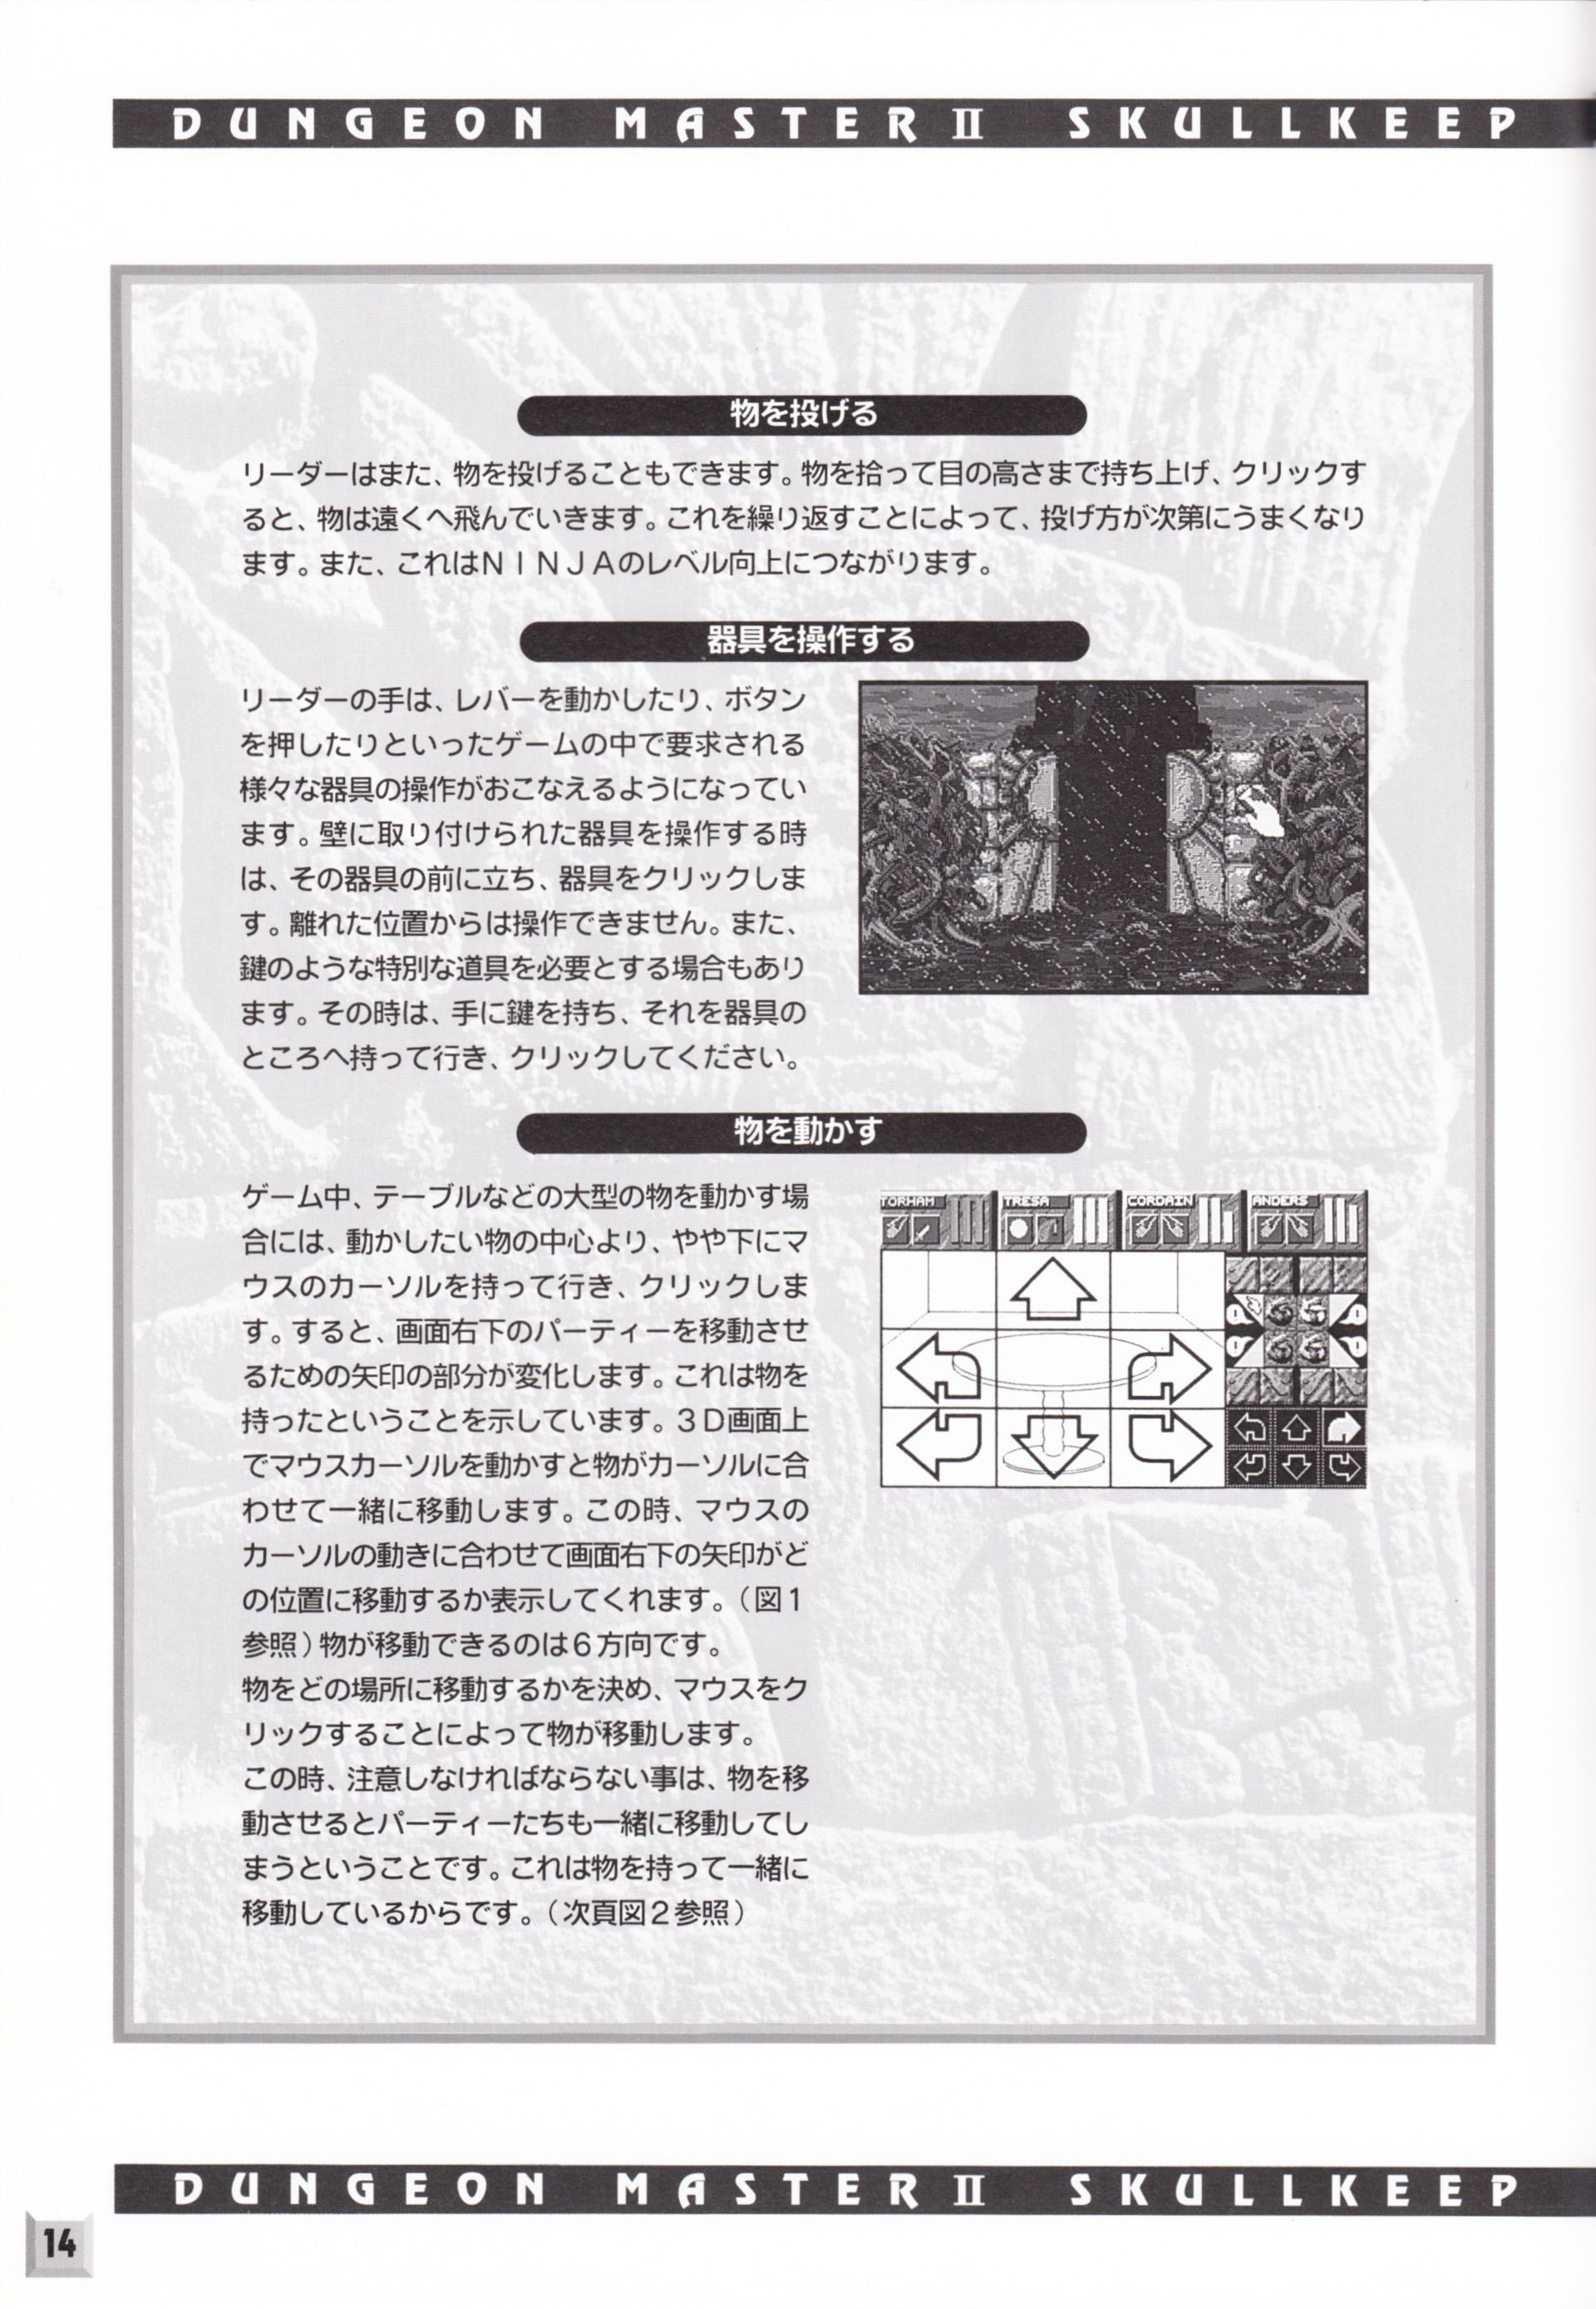 Game - Dungeon Master II - JP - PC-9801 - 3.5-inch - An Operation Manual - Page 016 - Scan